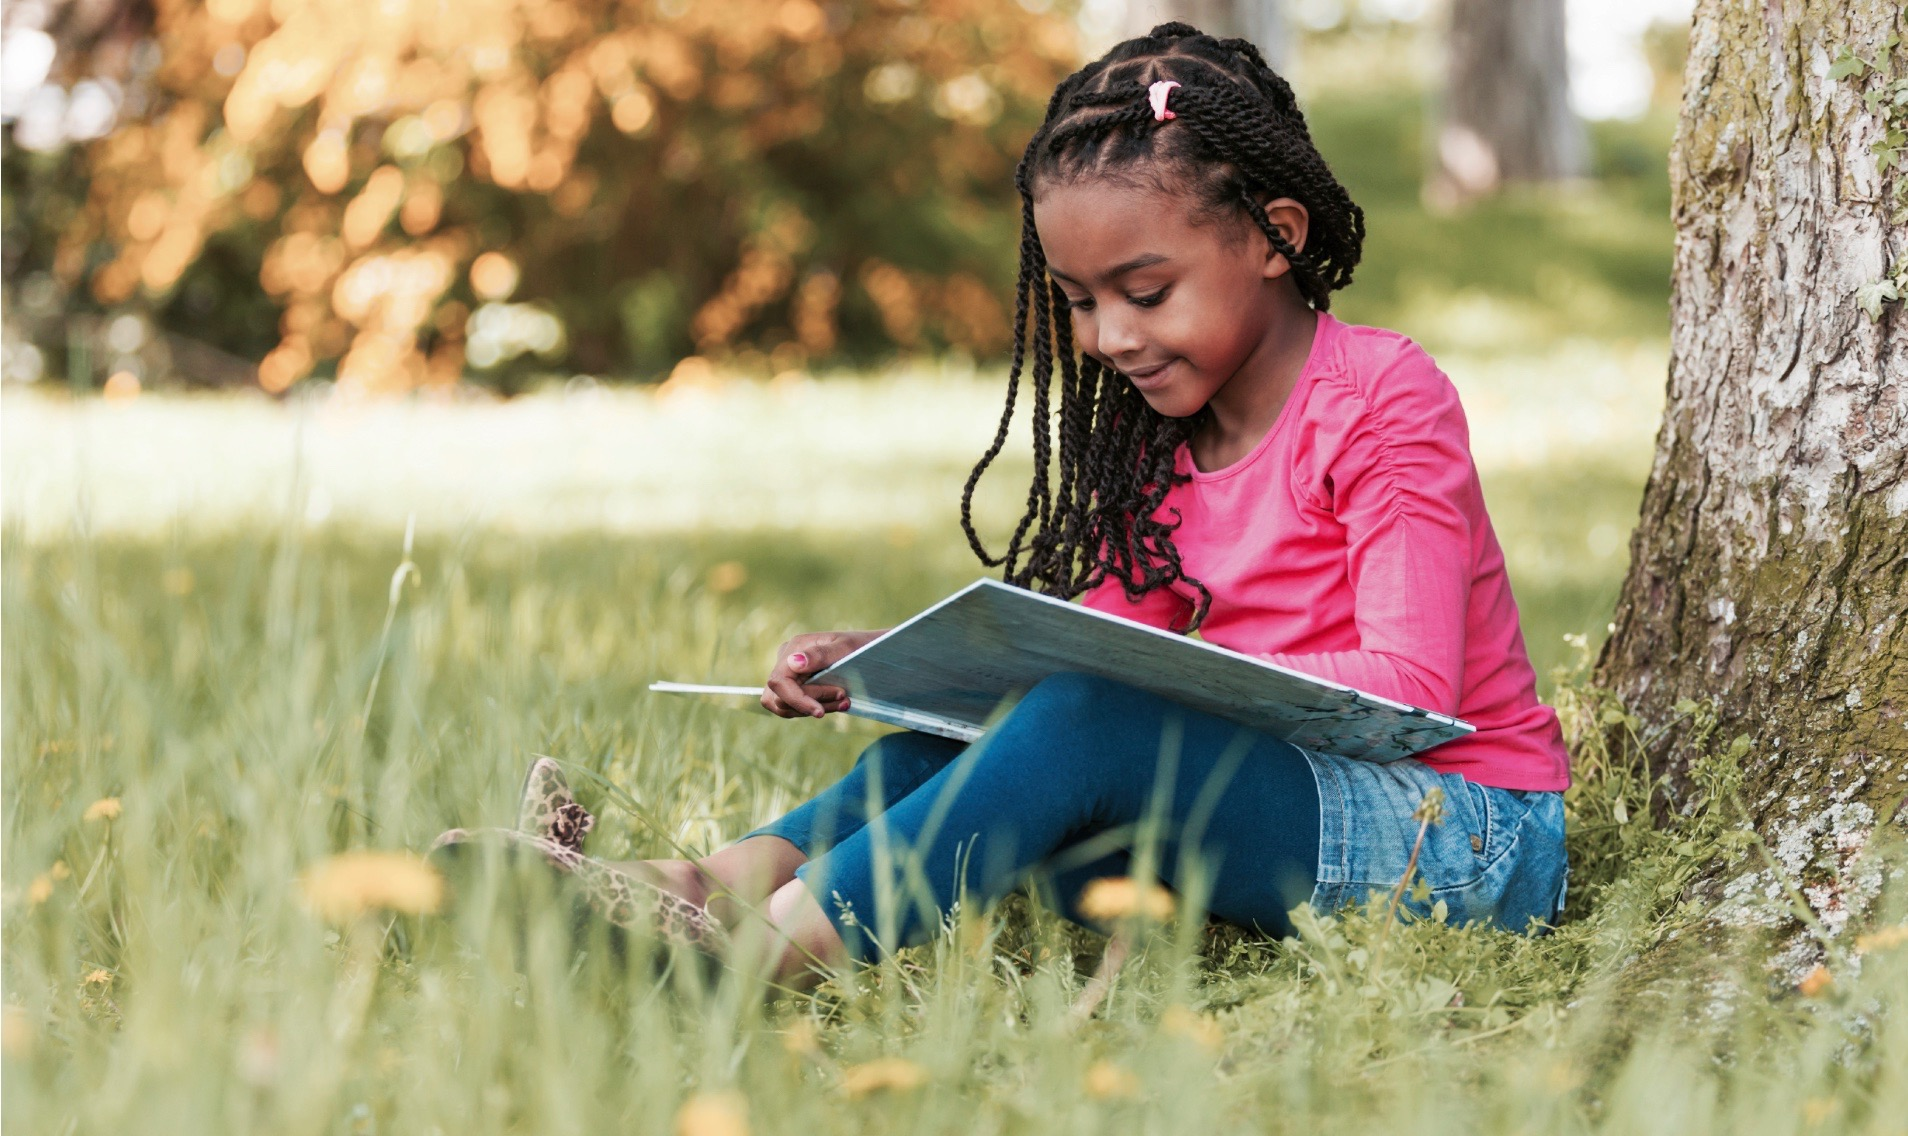 How to Prevent Your Children From Experiencing Learning Loss Over the Summer by Going Outdoors